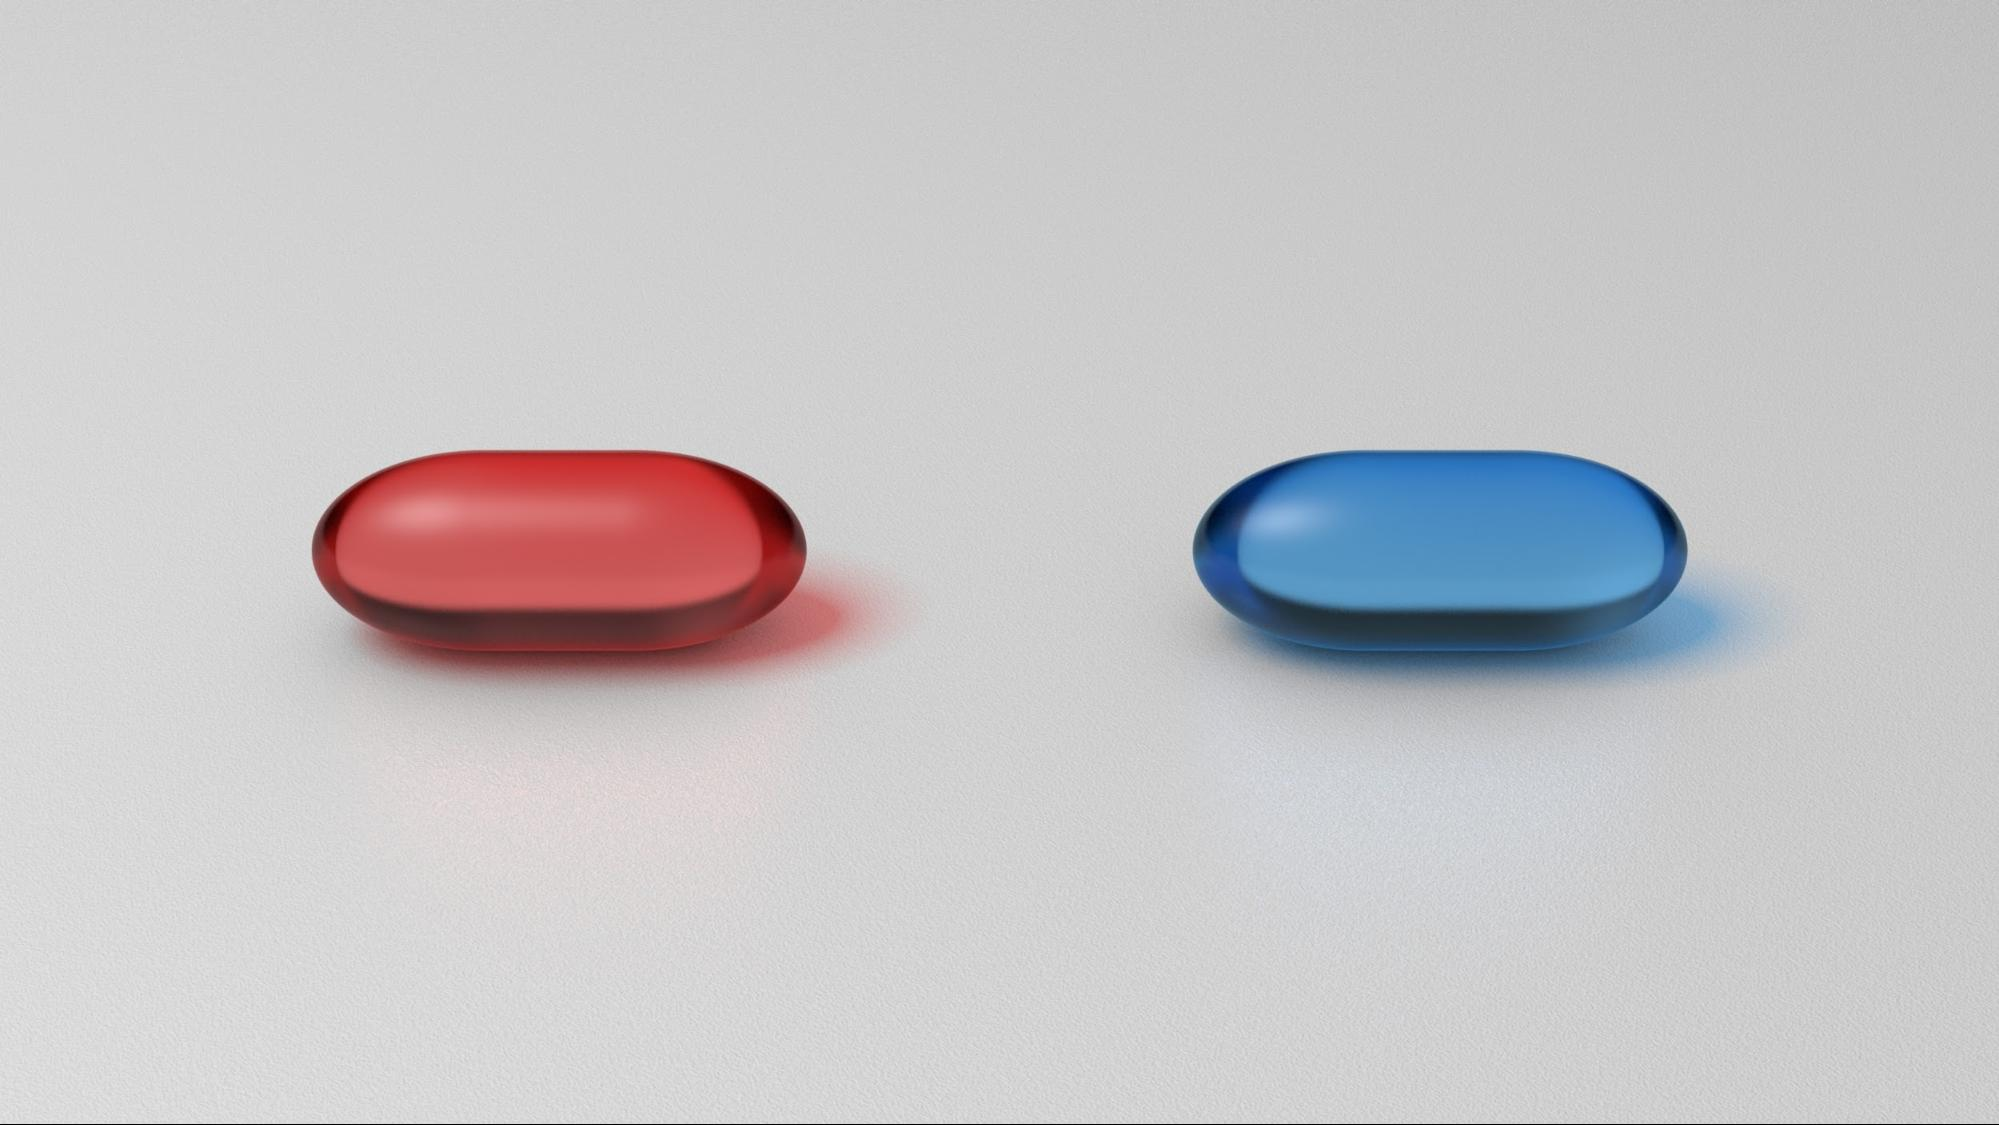 Red and blue pills